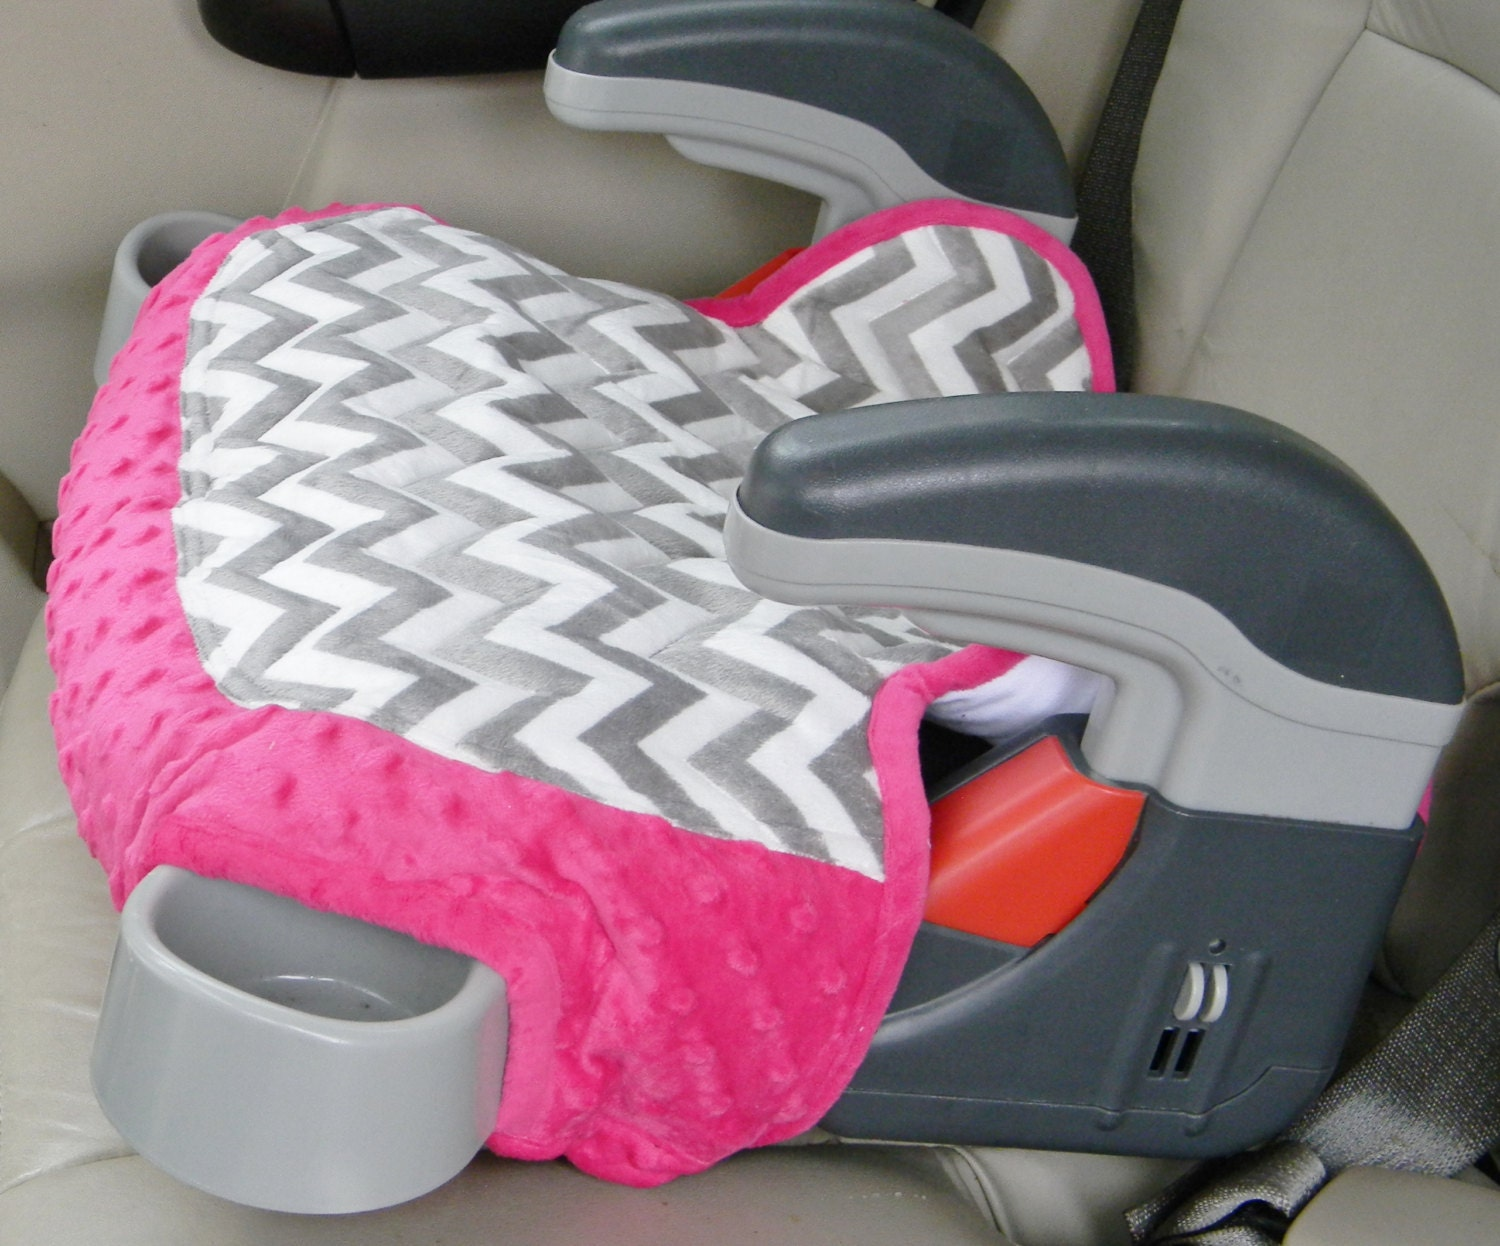 Graco Turbo Padded Booster Seat Car Accessory In Grey By Berniea64